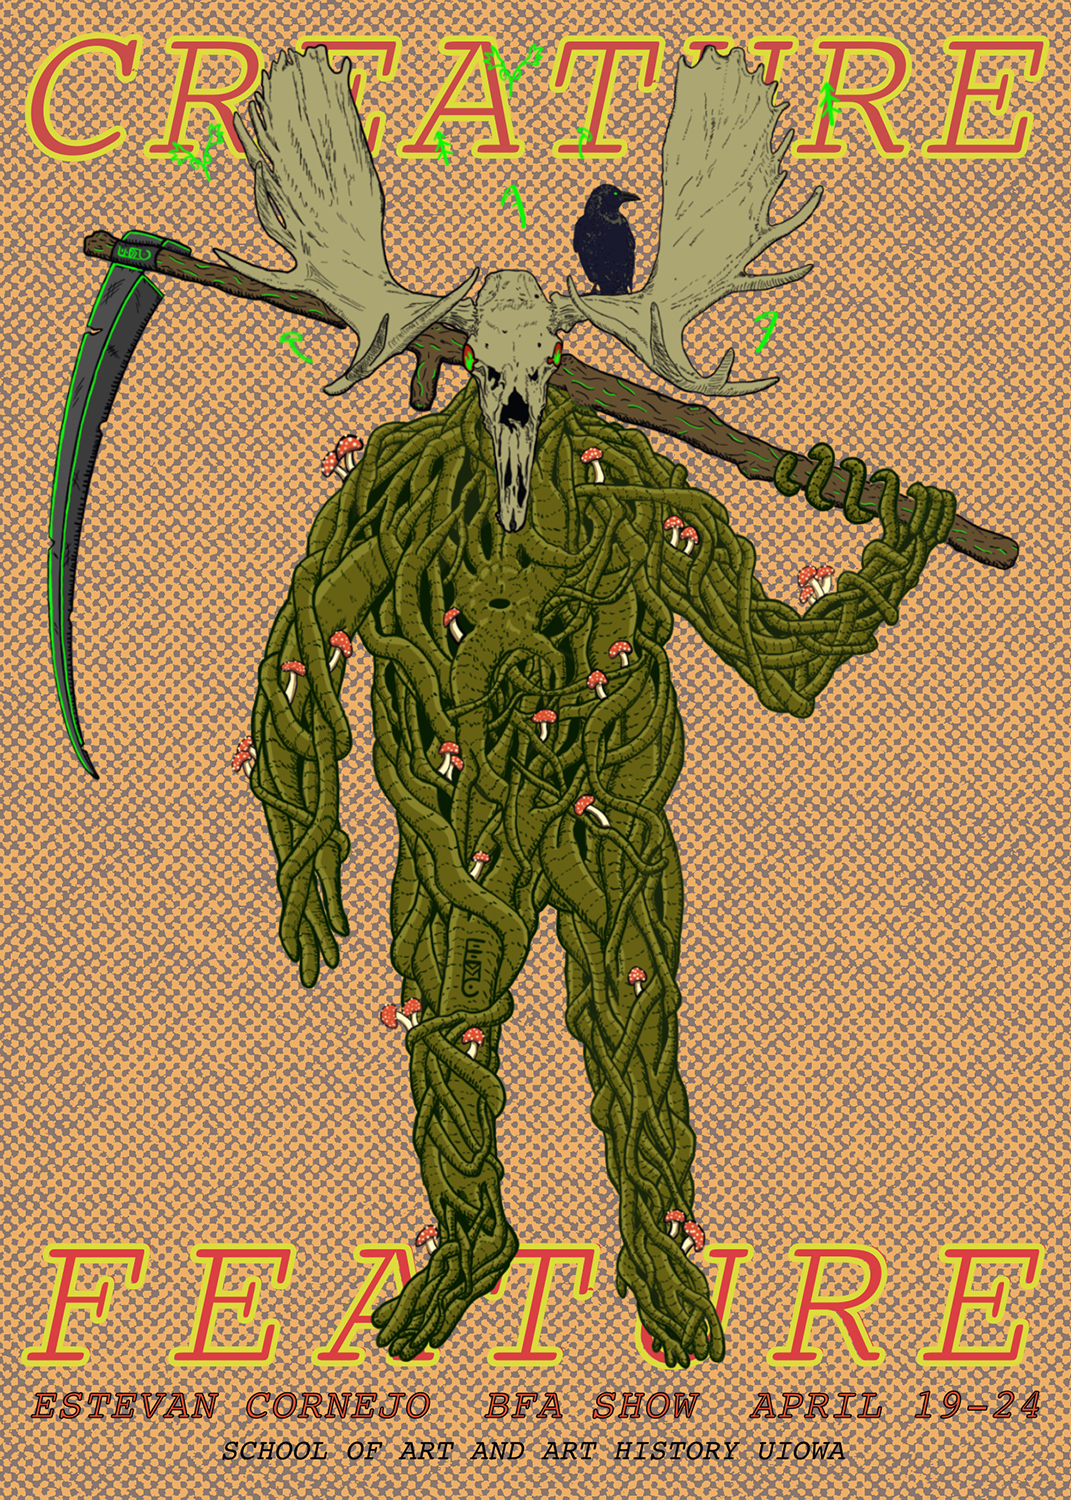 green creature with skull head and antlers, black crow on antler, green blade on pole arm holding over shoulder